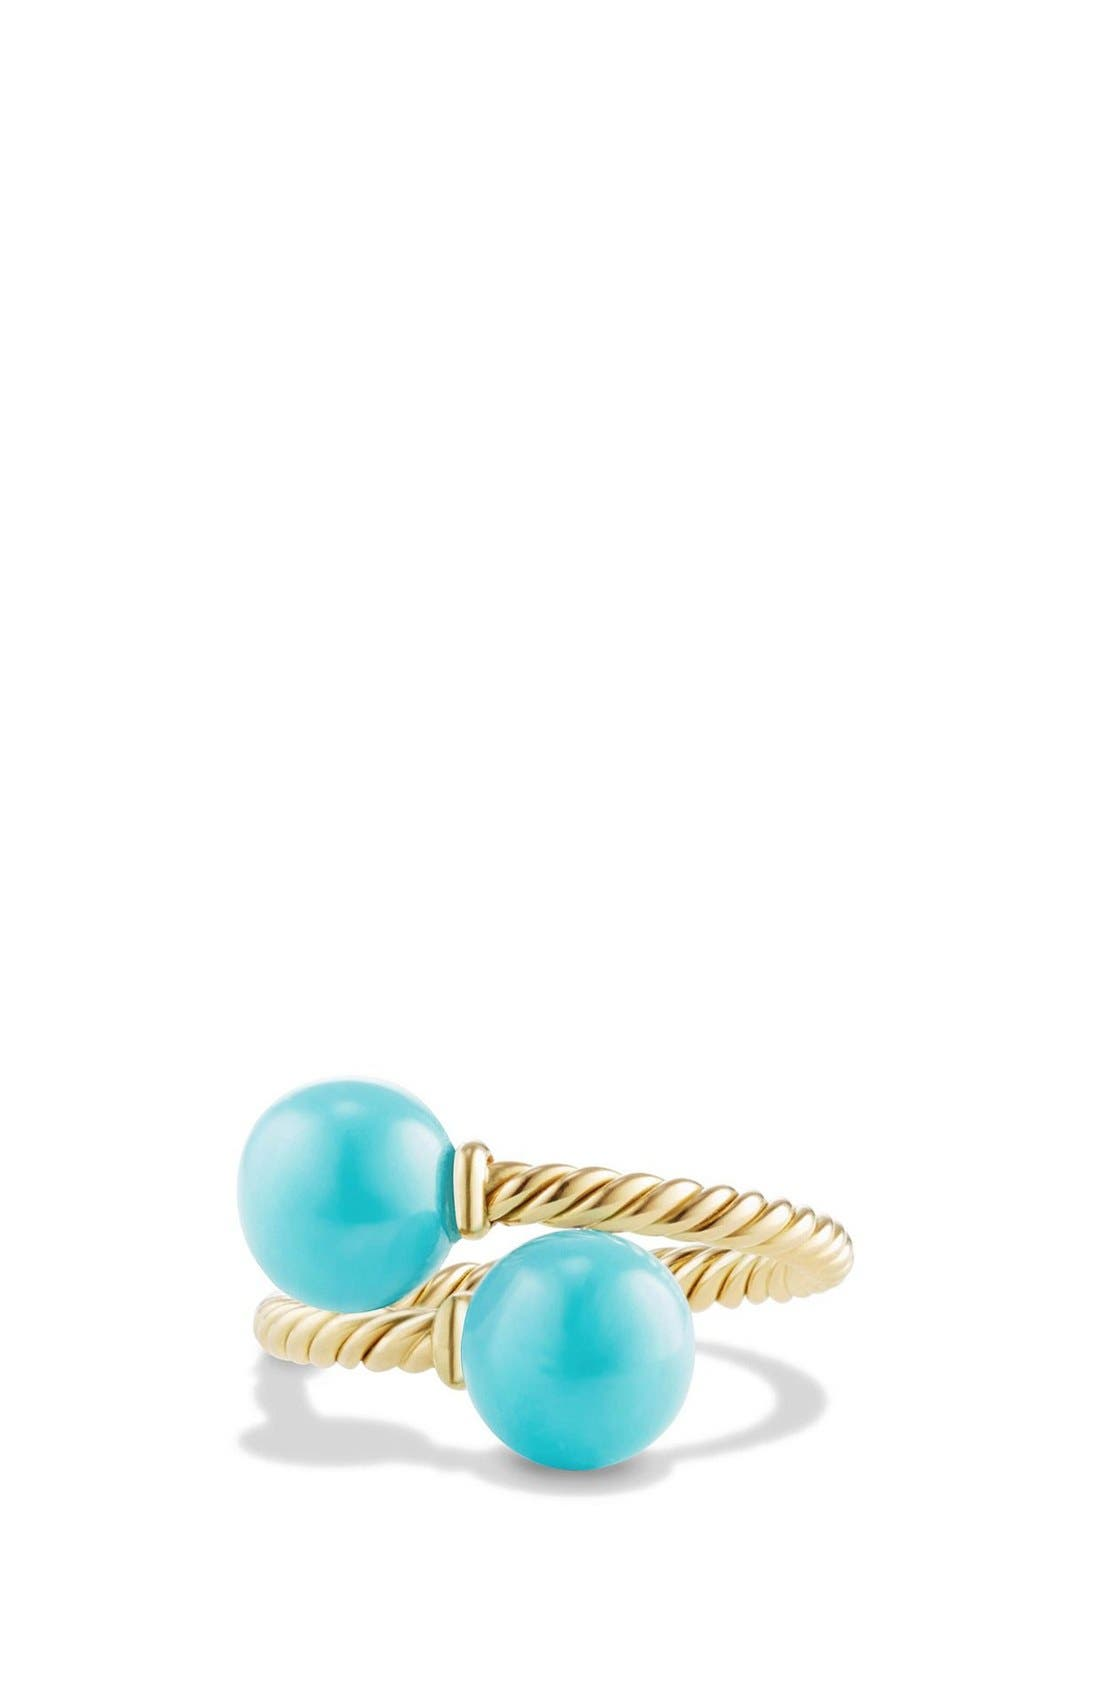 DAVID YURMAN 'Solari' Bead Ring with Turquoise in 18K Gold, Main, color, TURQUOISE